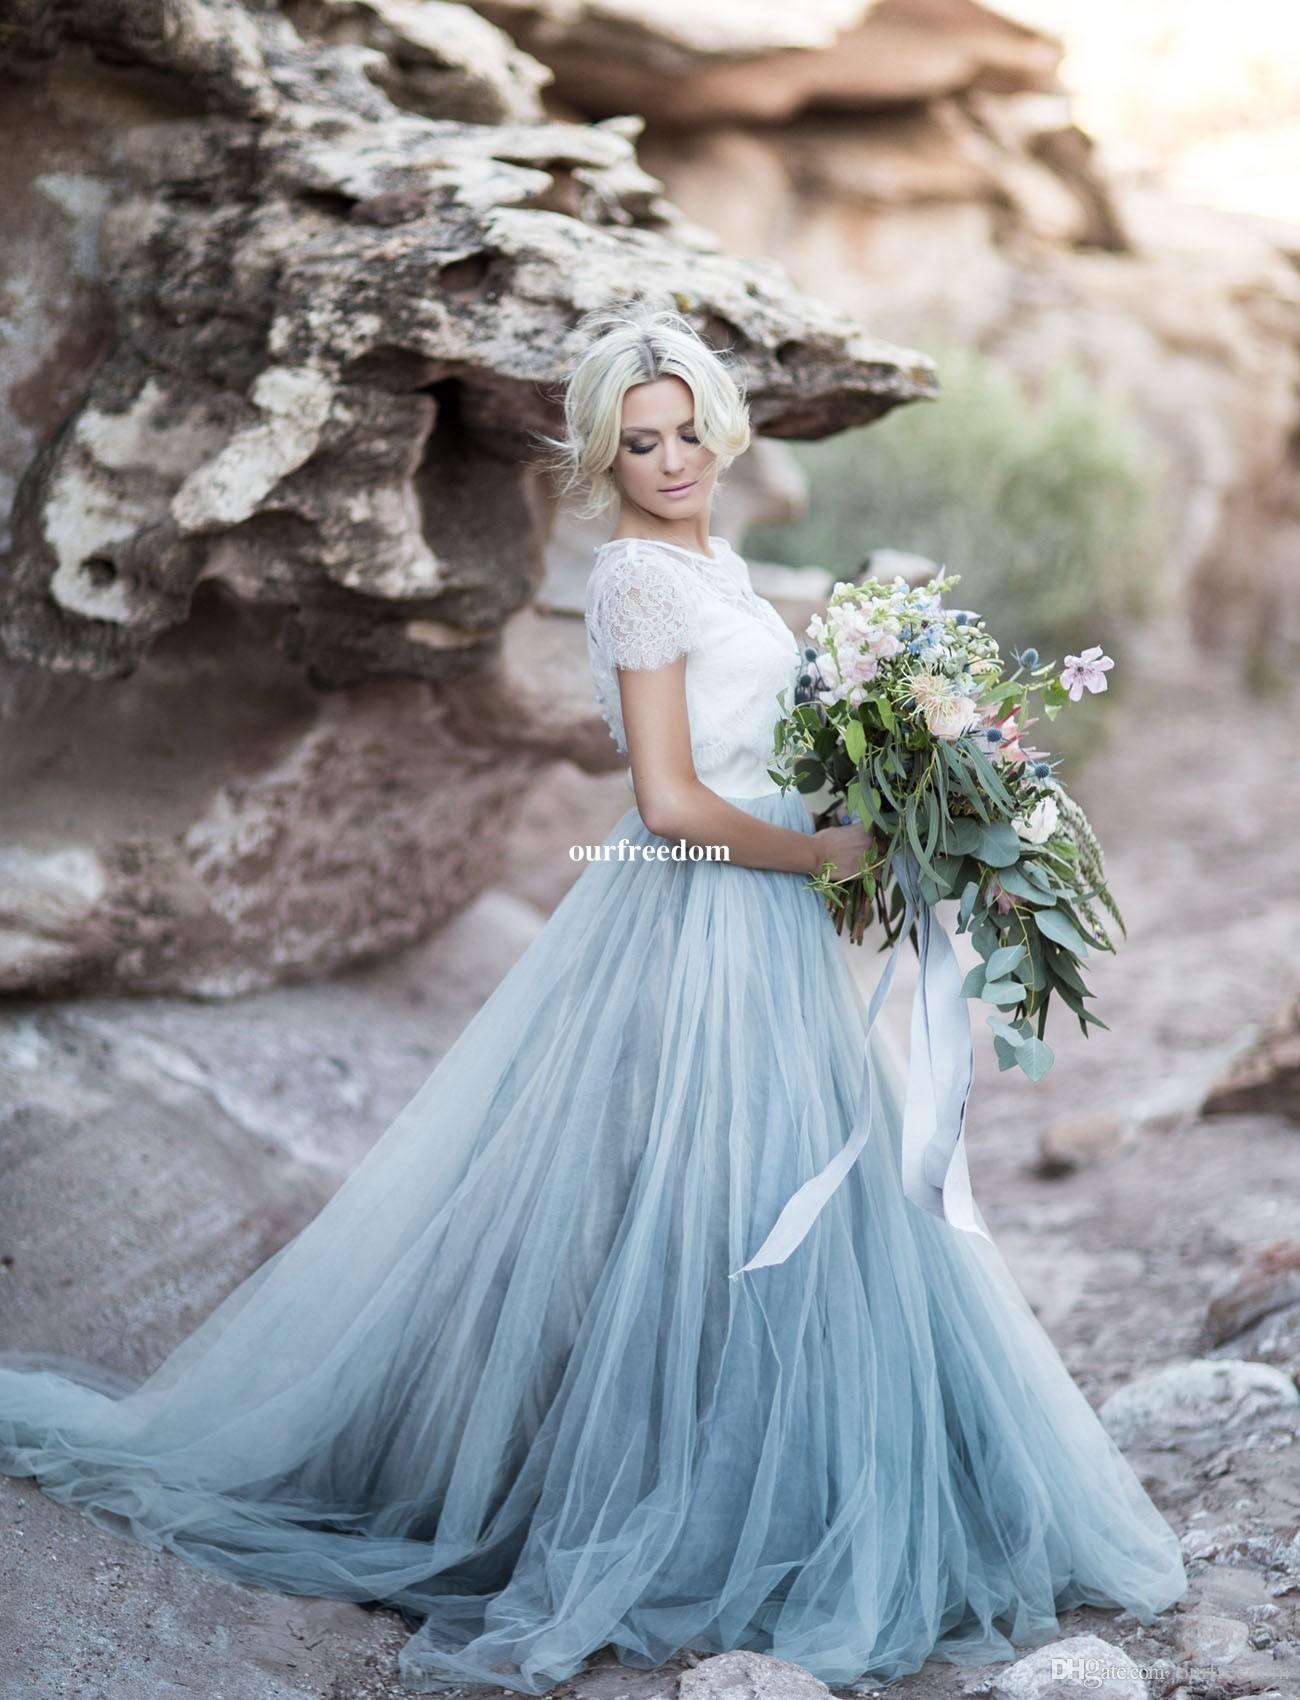 2019 Fairy Beach Boho Lace Wedding Dresses High-Neck A Line Soft Tulle Cap Sleeves Backless Light Blue Skirts Plus Size Bohemian Bridal Gown